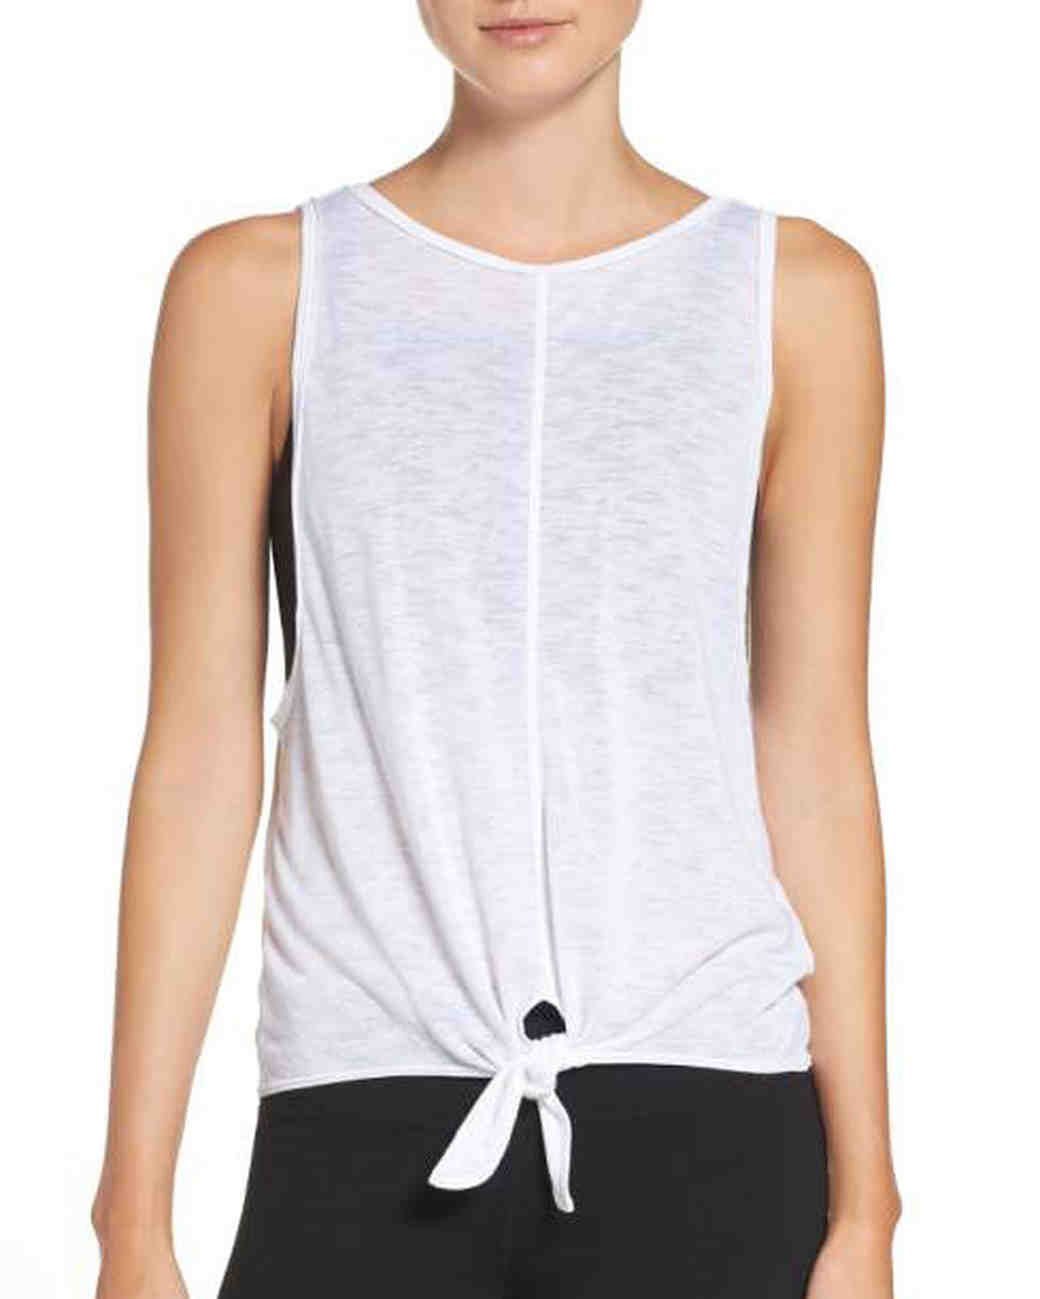 white workout tank